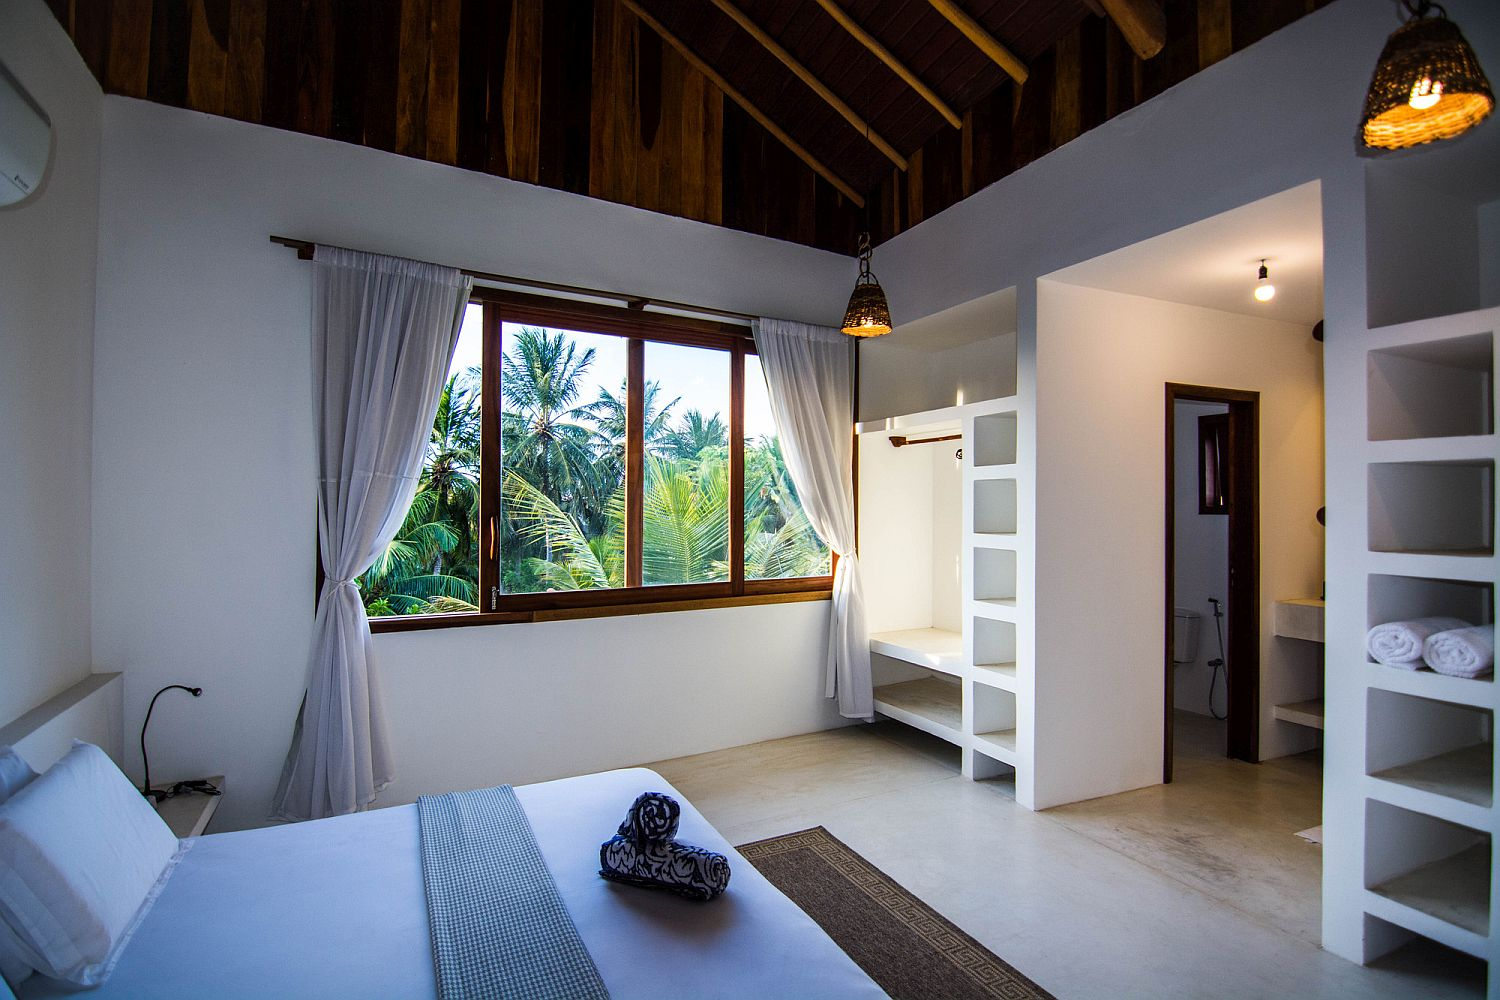 Relaxing and gorgeous bedroom of the holiday house in white with a wooden ceiling